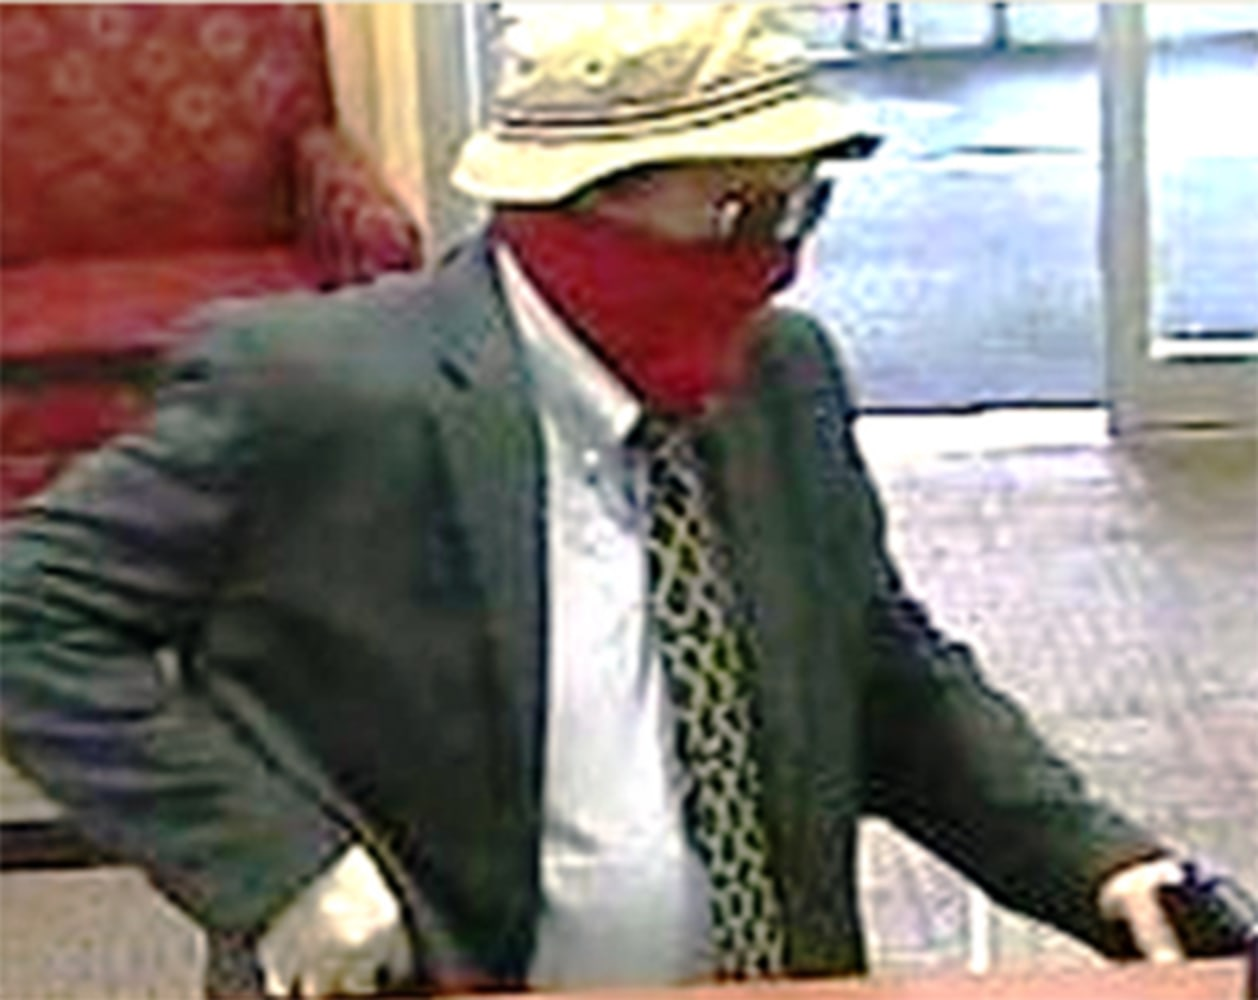 'Straw hat bandit' arrested in 11 Pennsylvania bank robberies